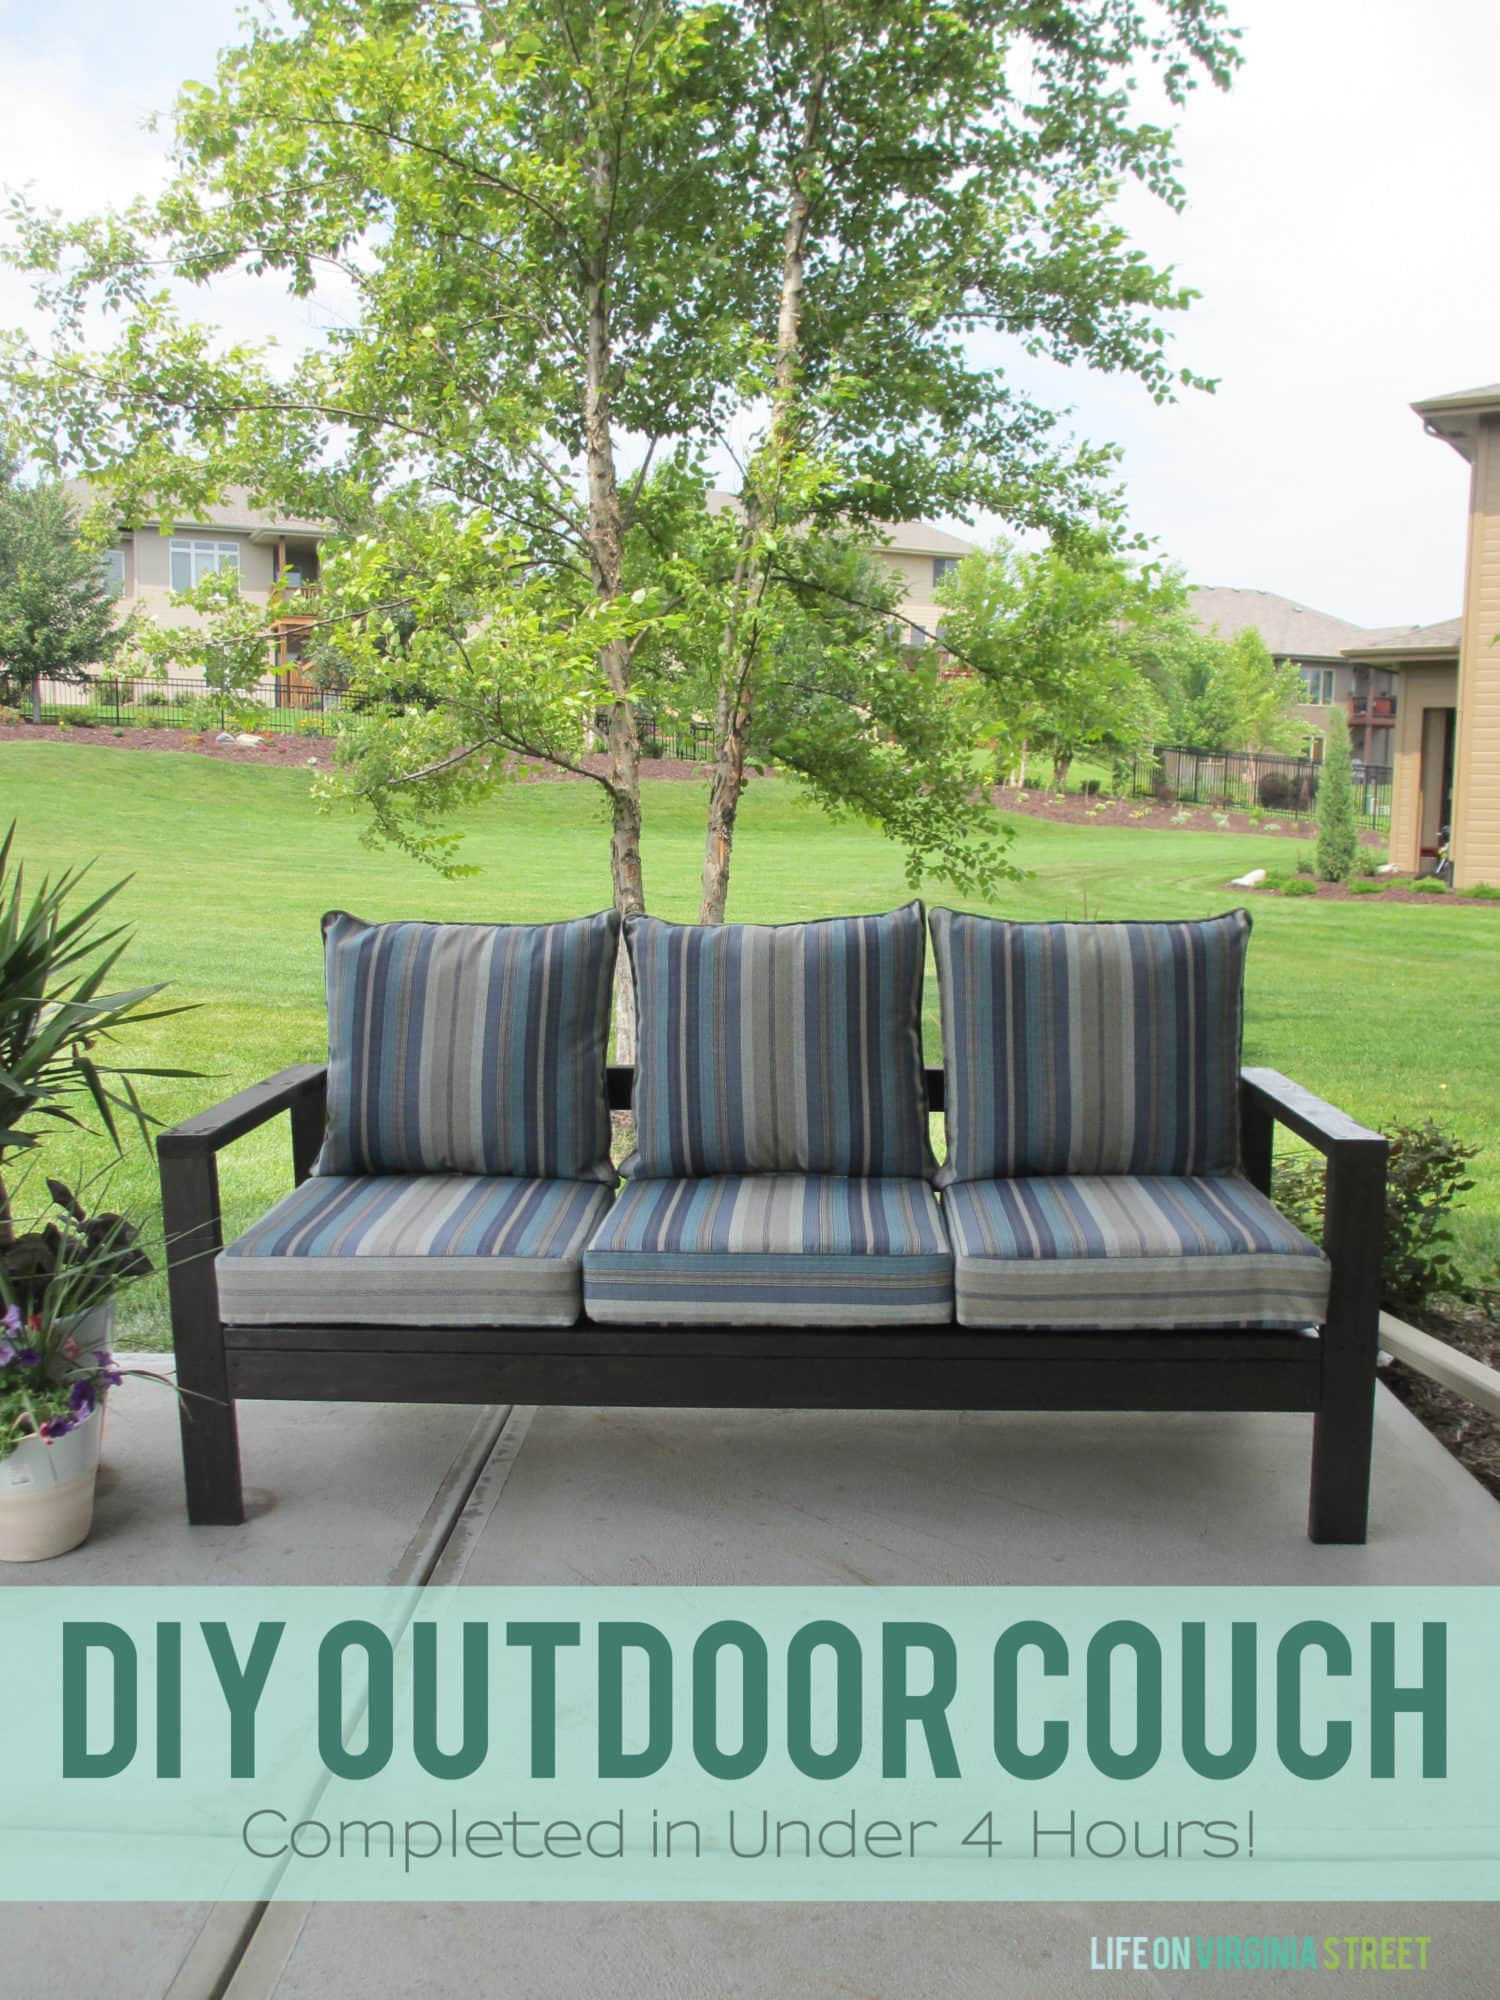 hope you love our diy outdoor couch as much as we do